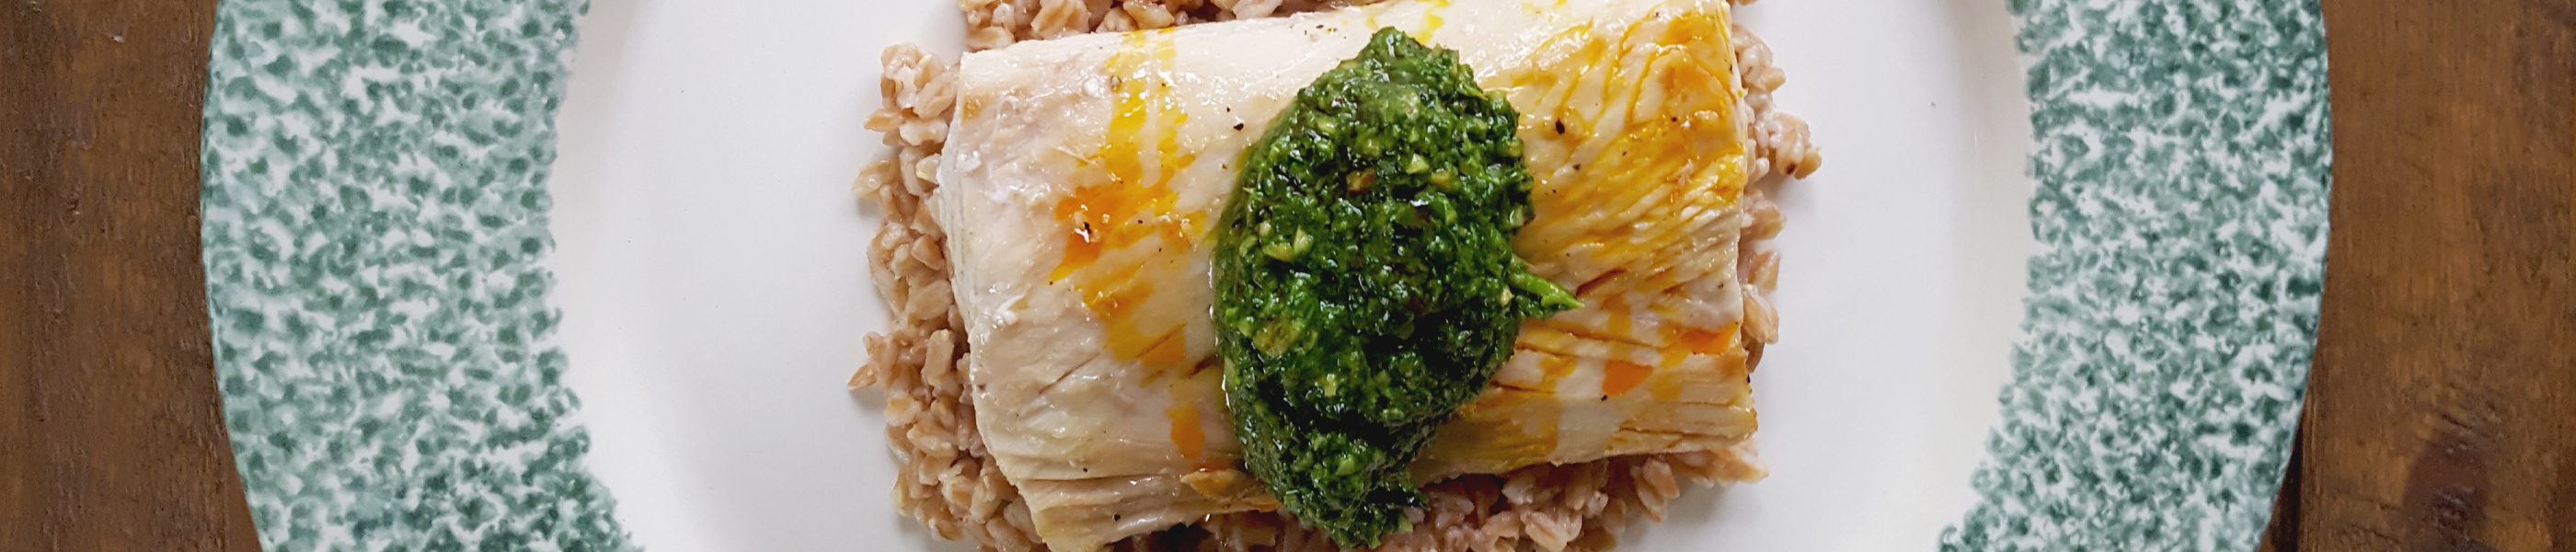 Fish topped with pesto served on a bed of rice